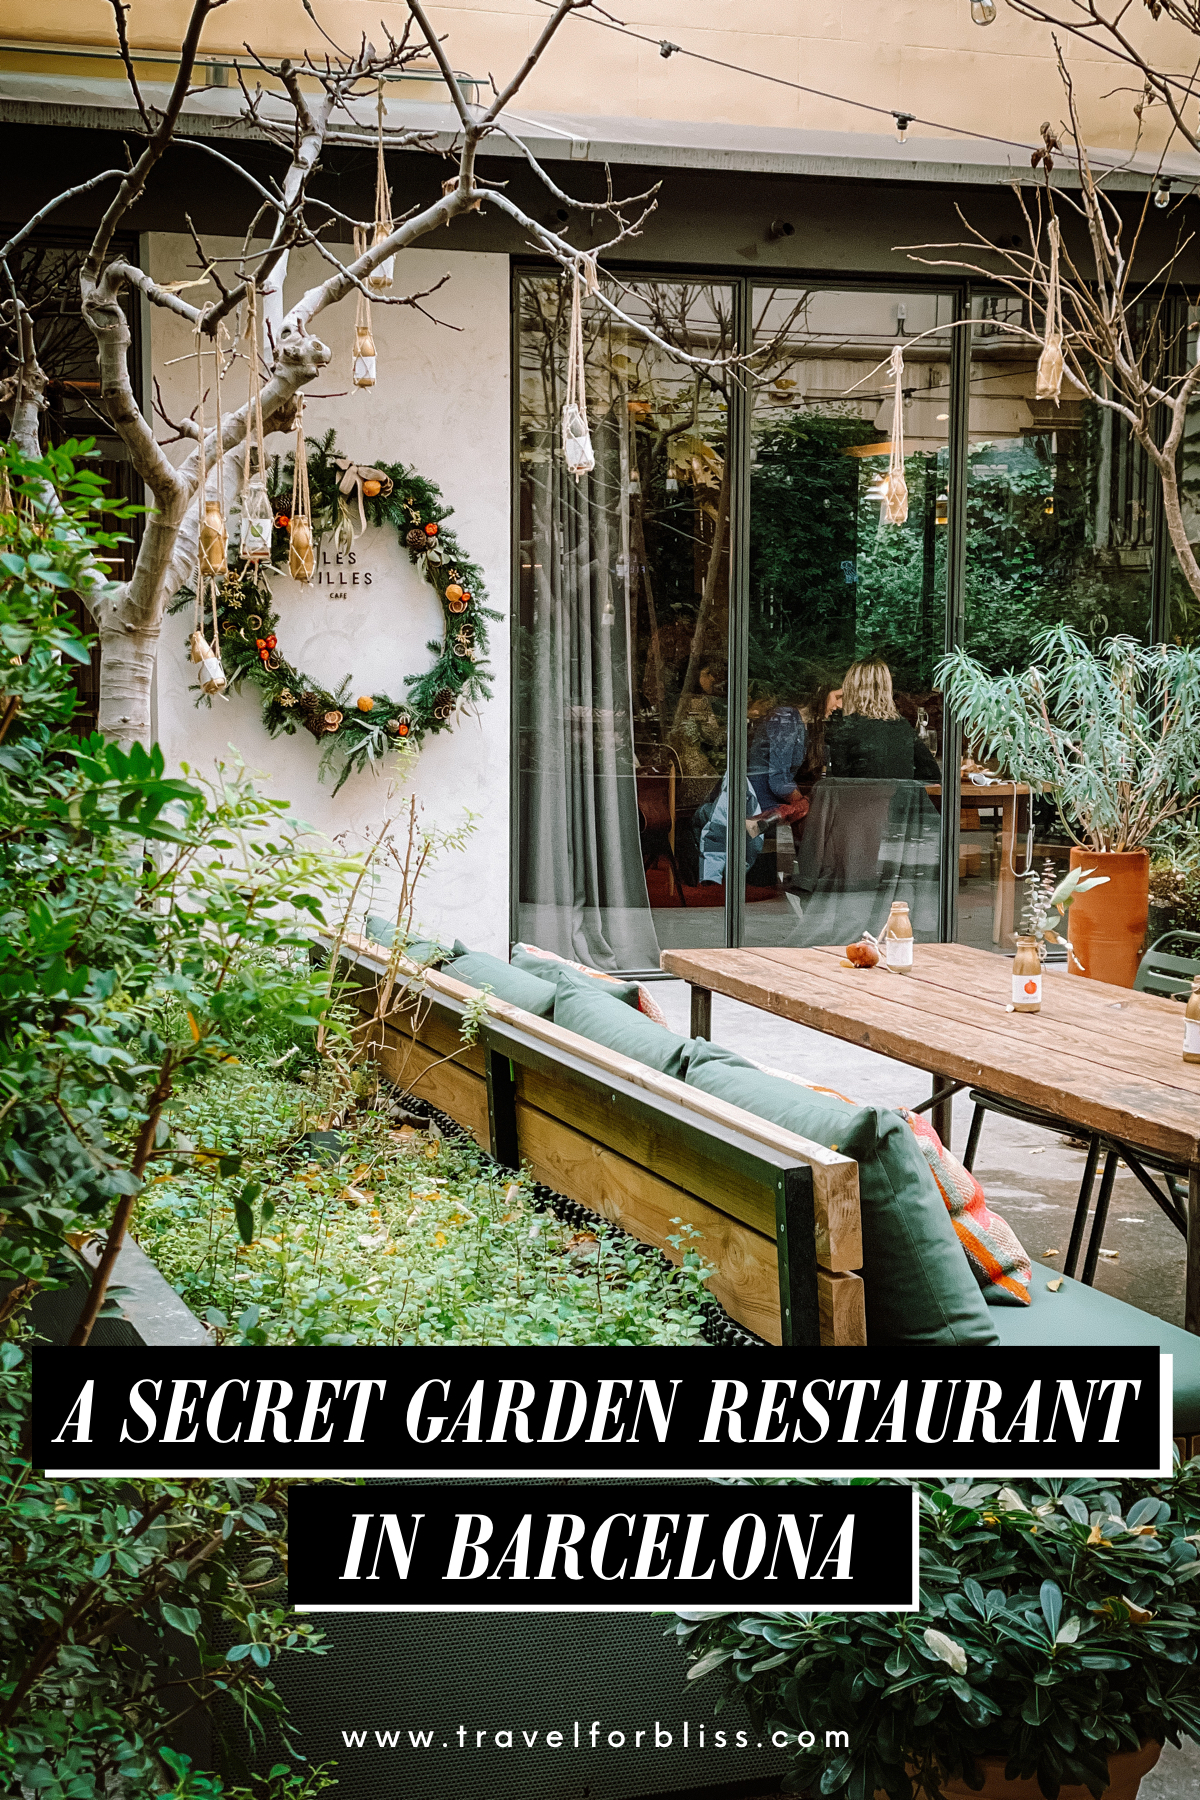 Discover the perfect secret garden restaurant in Barcelona. Les Filles is one of the best restaurants in Barcelona. The outdoor dining in the garden is perfect for summer weather in Barcelona.